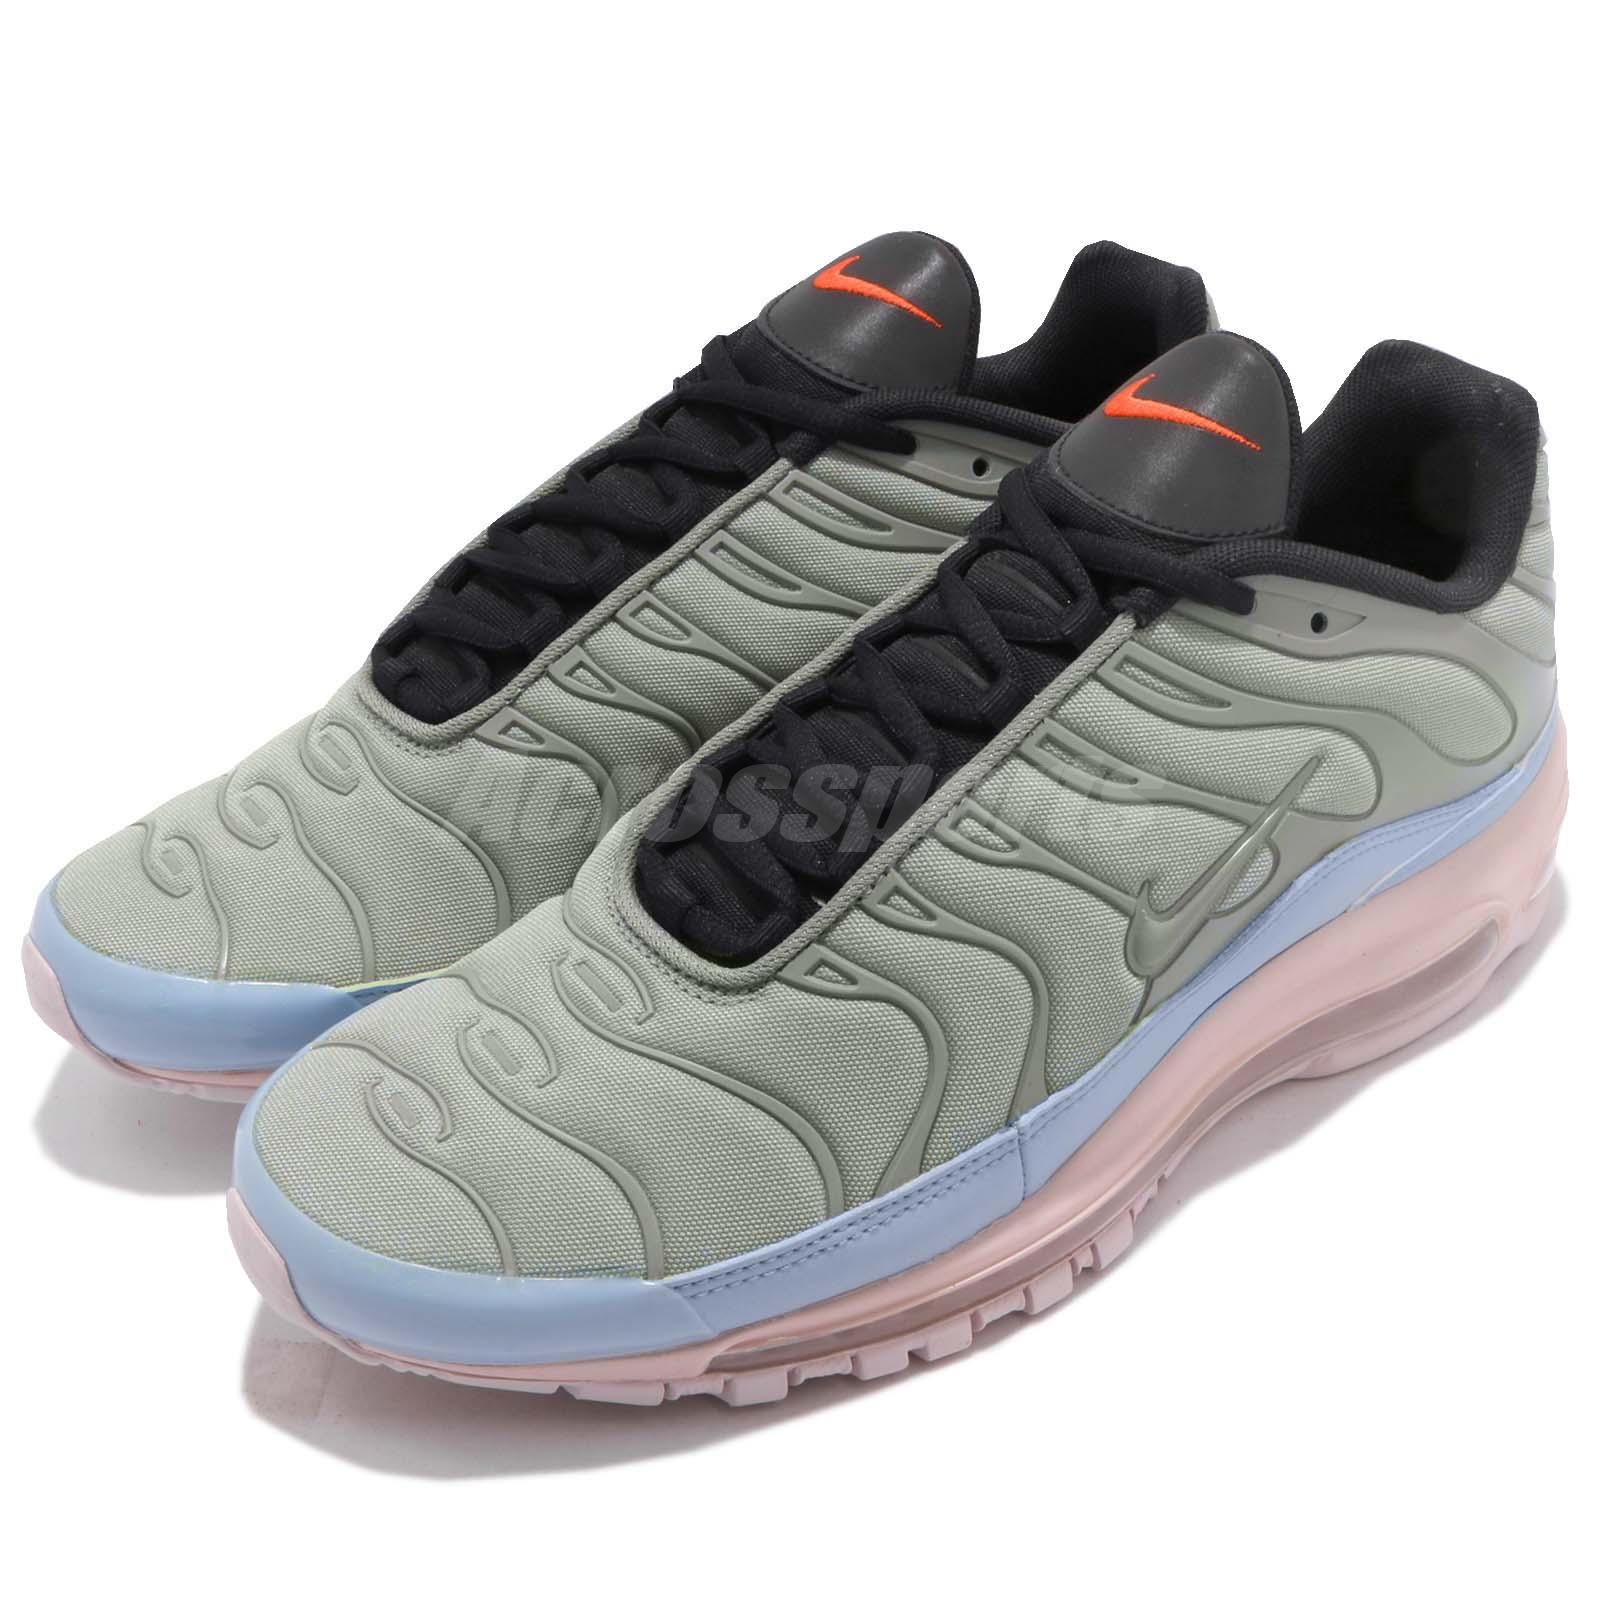 Nike Air Max 97 Plus Max Mix Layer Cake Mica Green Men Running Shoes AH8144300